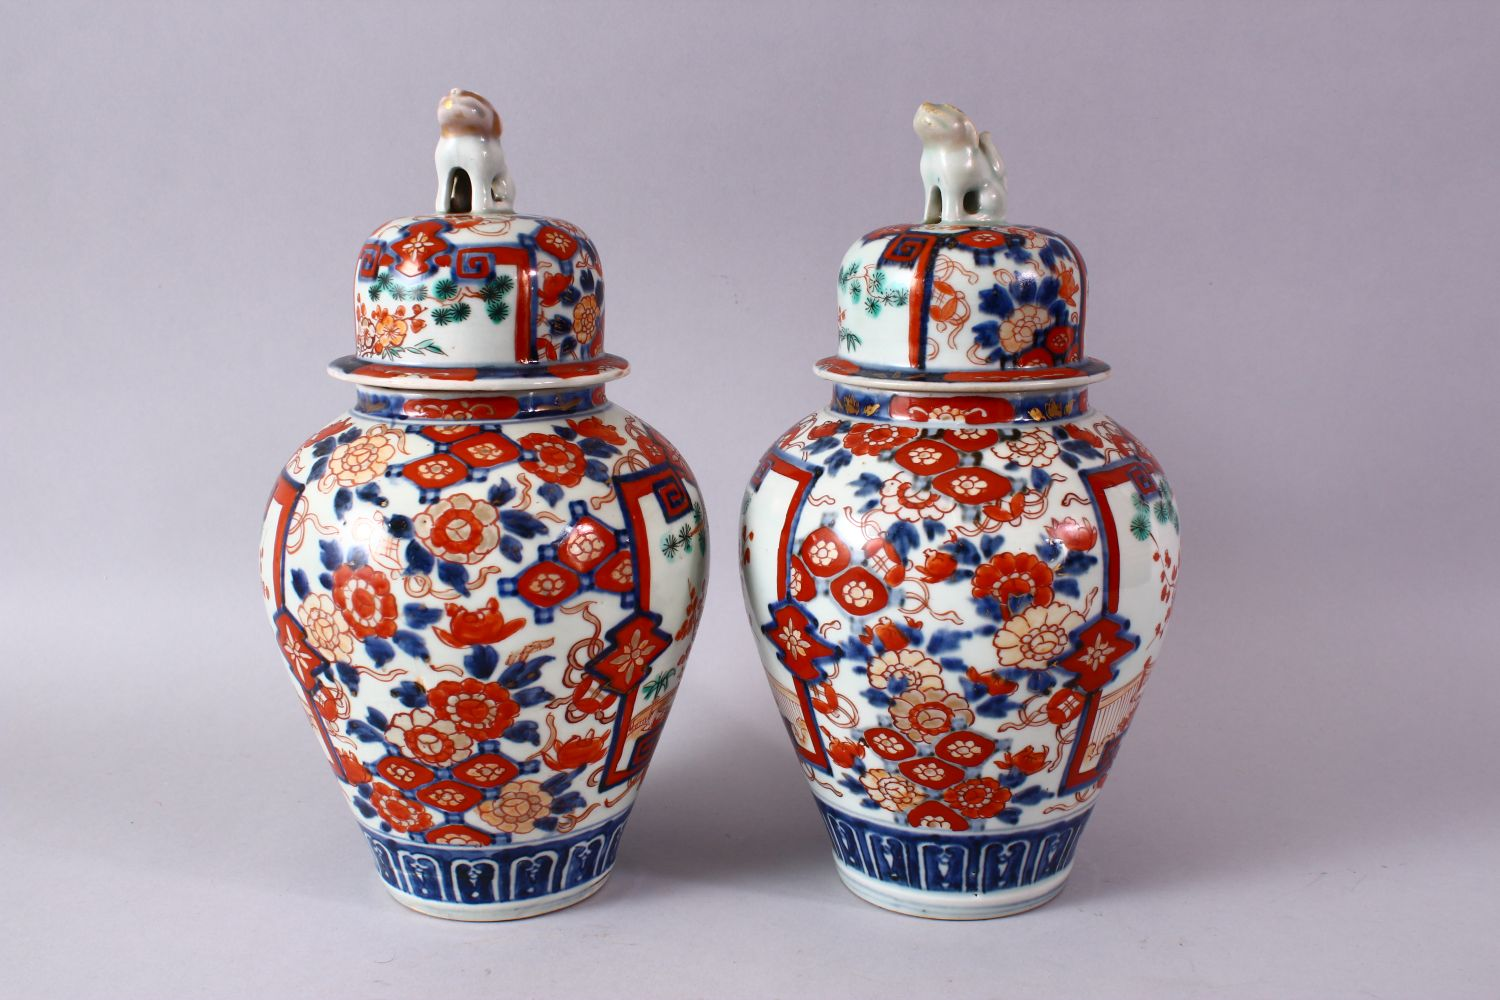 A PAIR OF MEIJI PERIOD IMARI VASES AND COVERS, with kylin finials, overall 30cm high. - Image 7 of 10